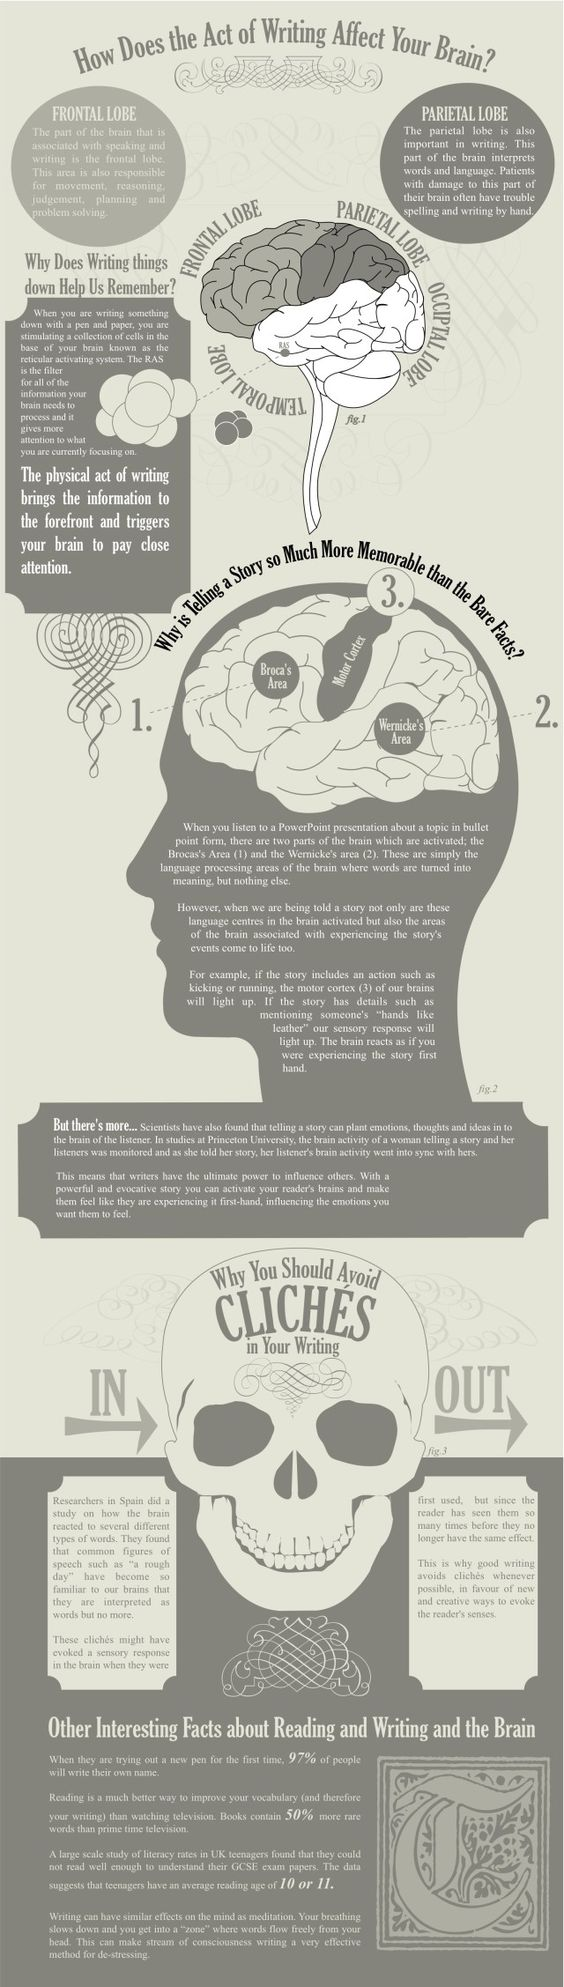 writing and the brain: